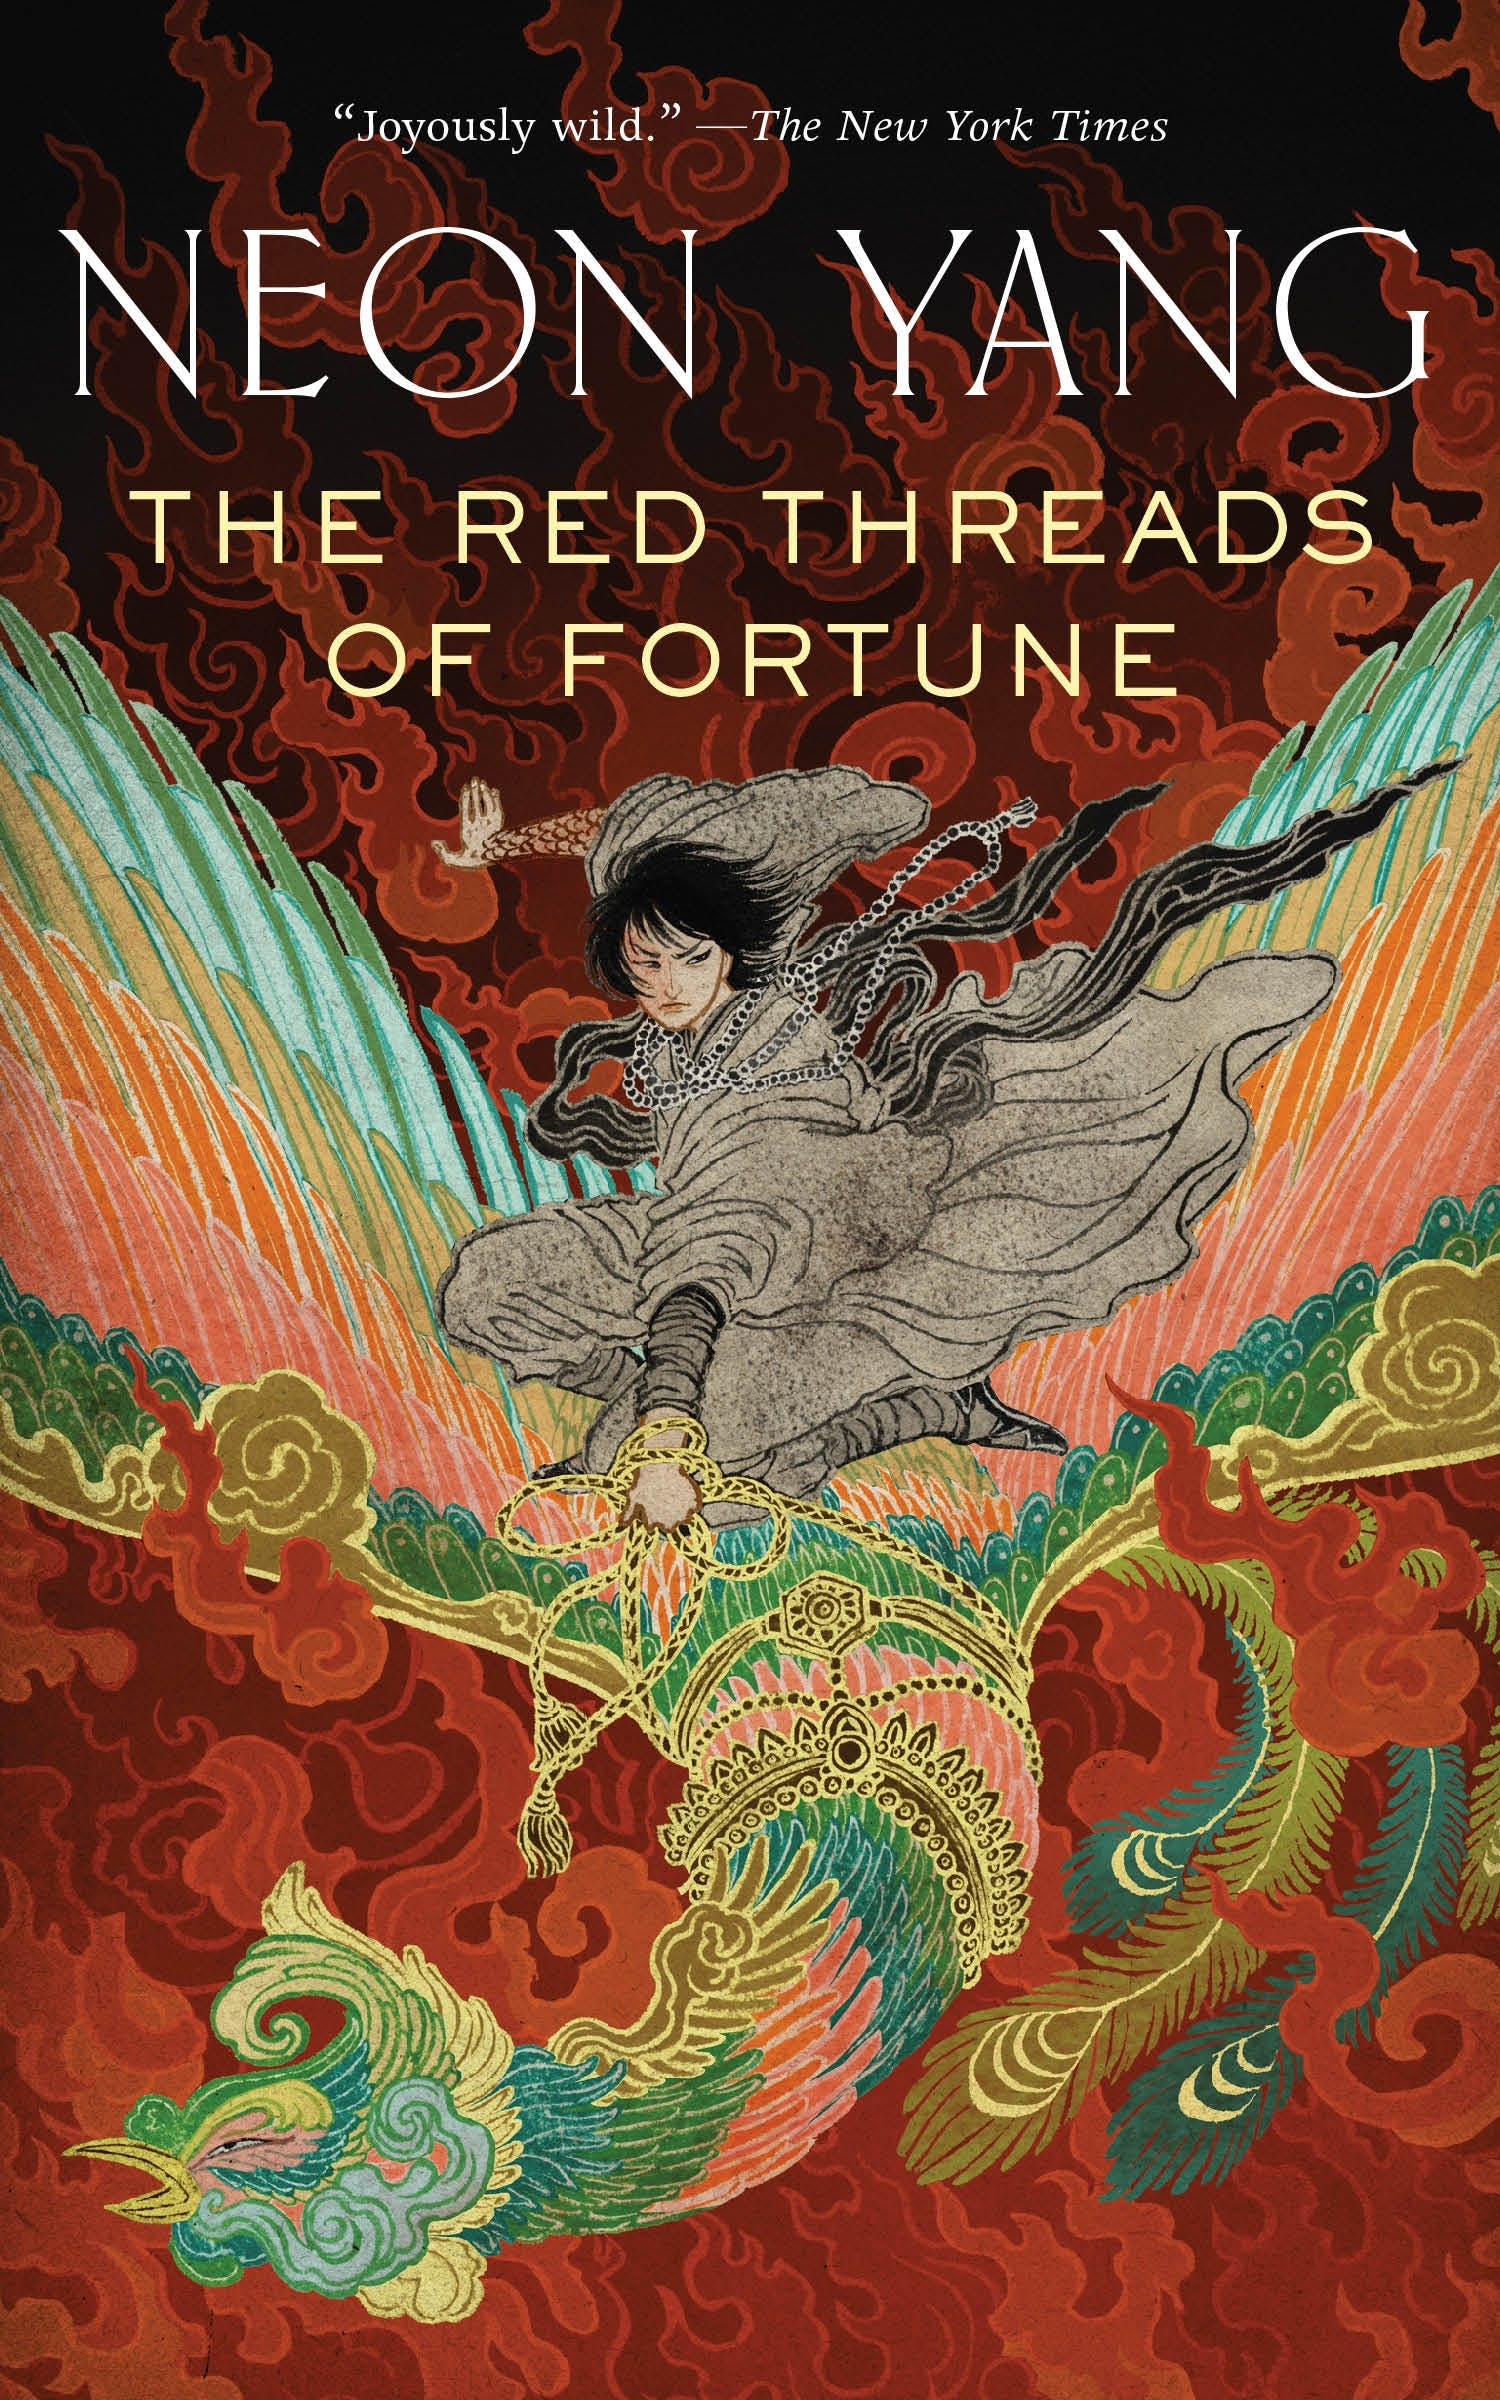 Image of The Red Threads of Fortune